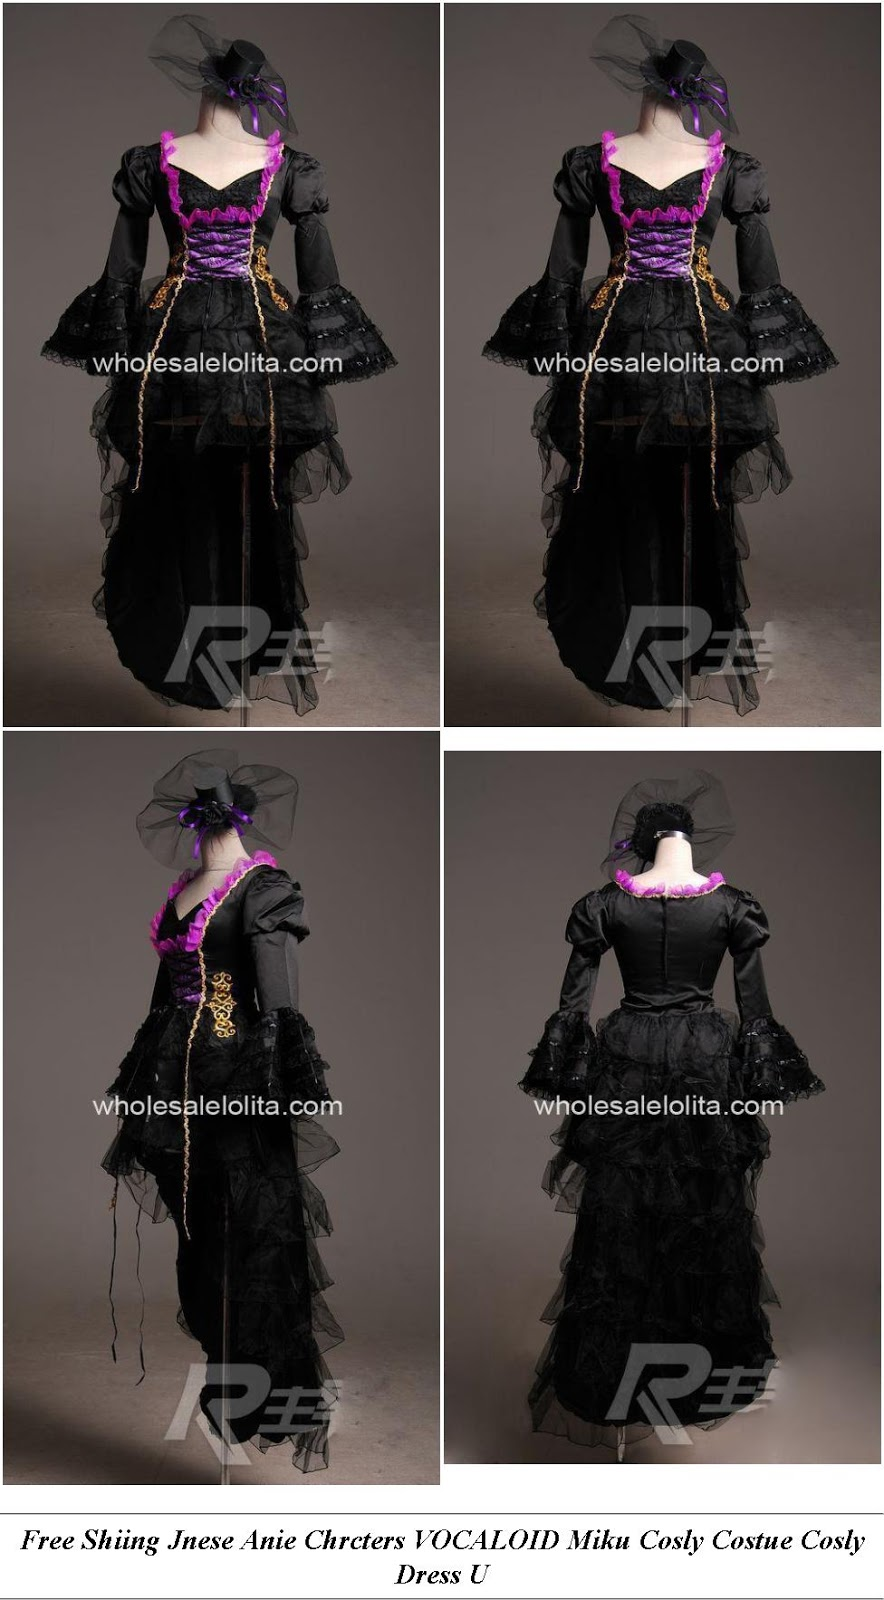 Evening Gowns Shops In Duai - Sell Handmade Items Online Free Uk - Pink Dress Outfit Images